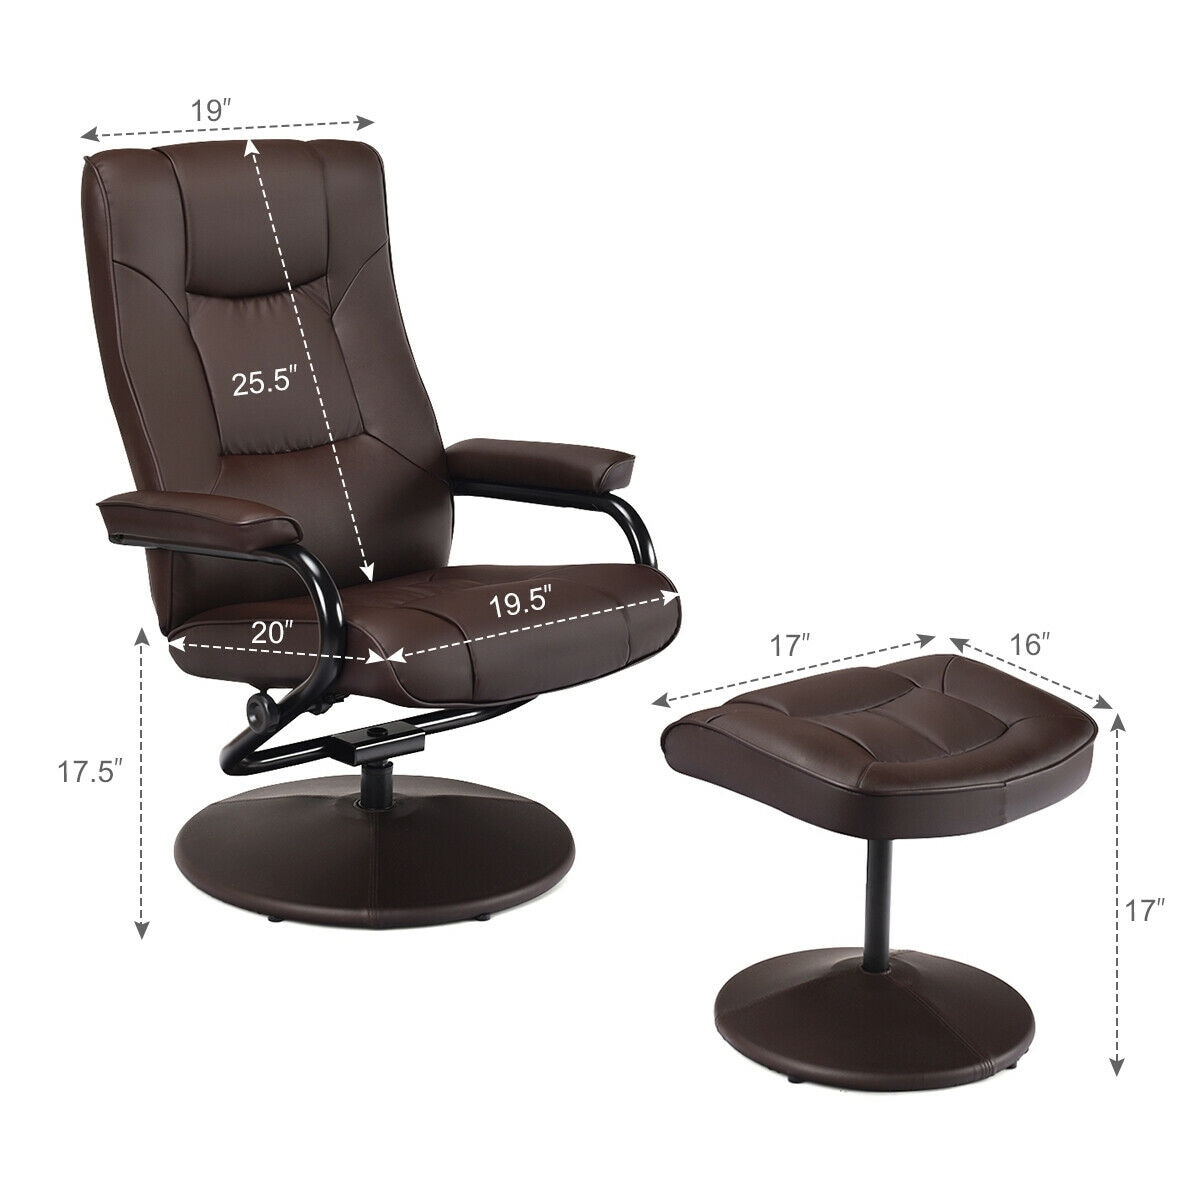 Costway Recliner Chair Swivel Armchair Lounge Seat W Footrest Stool Ottoman Home Brown